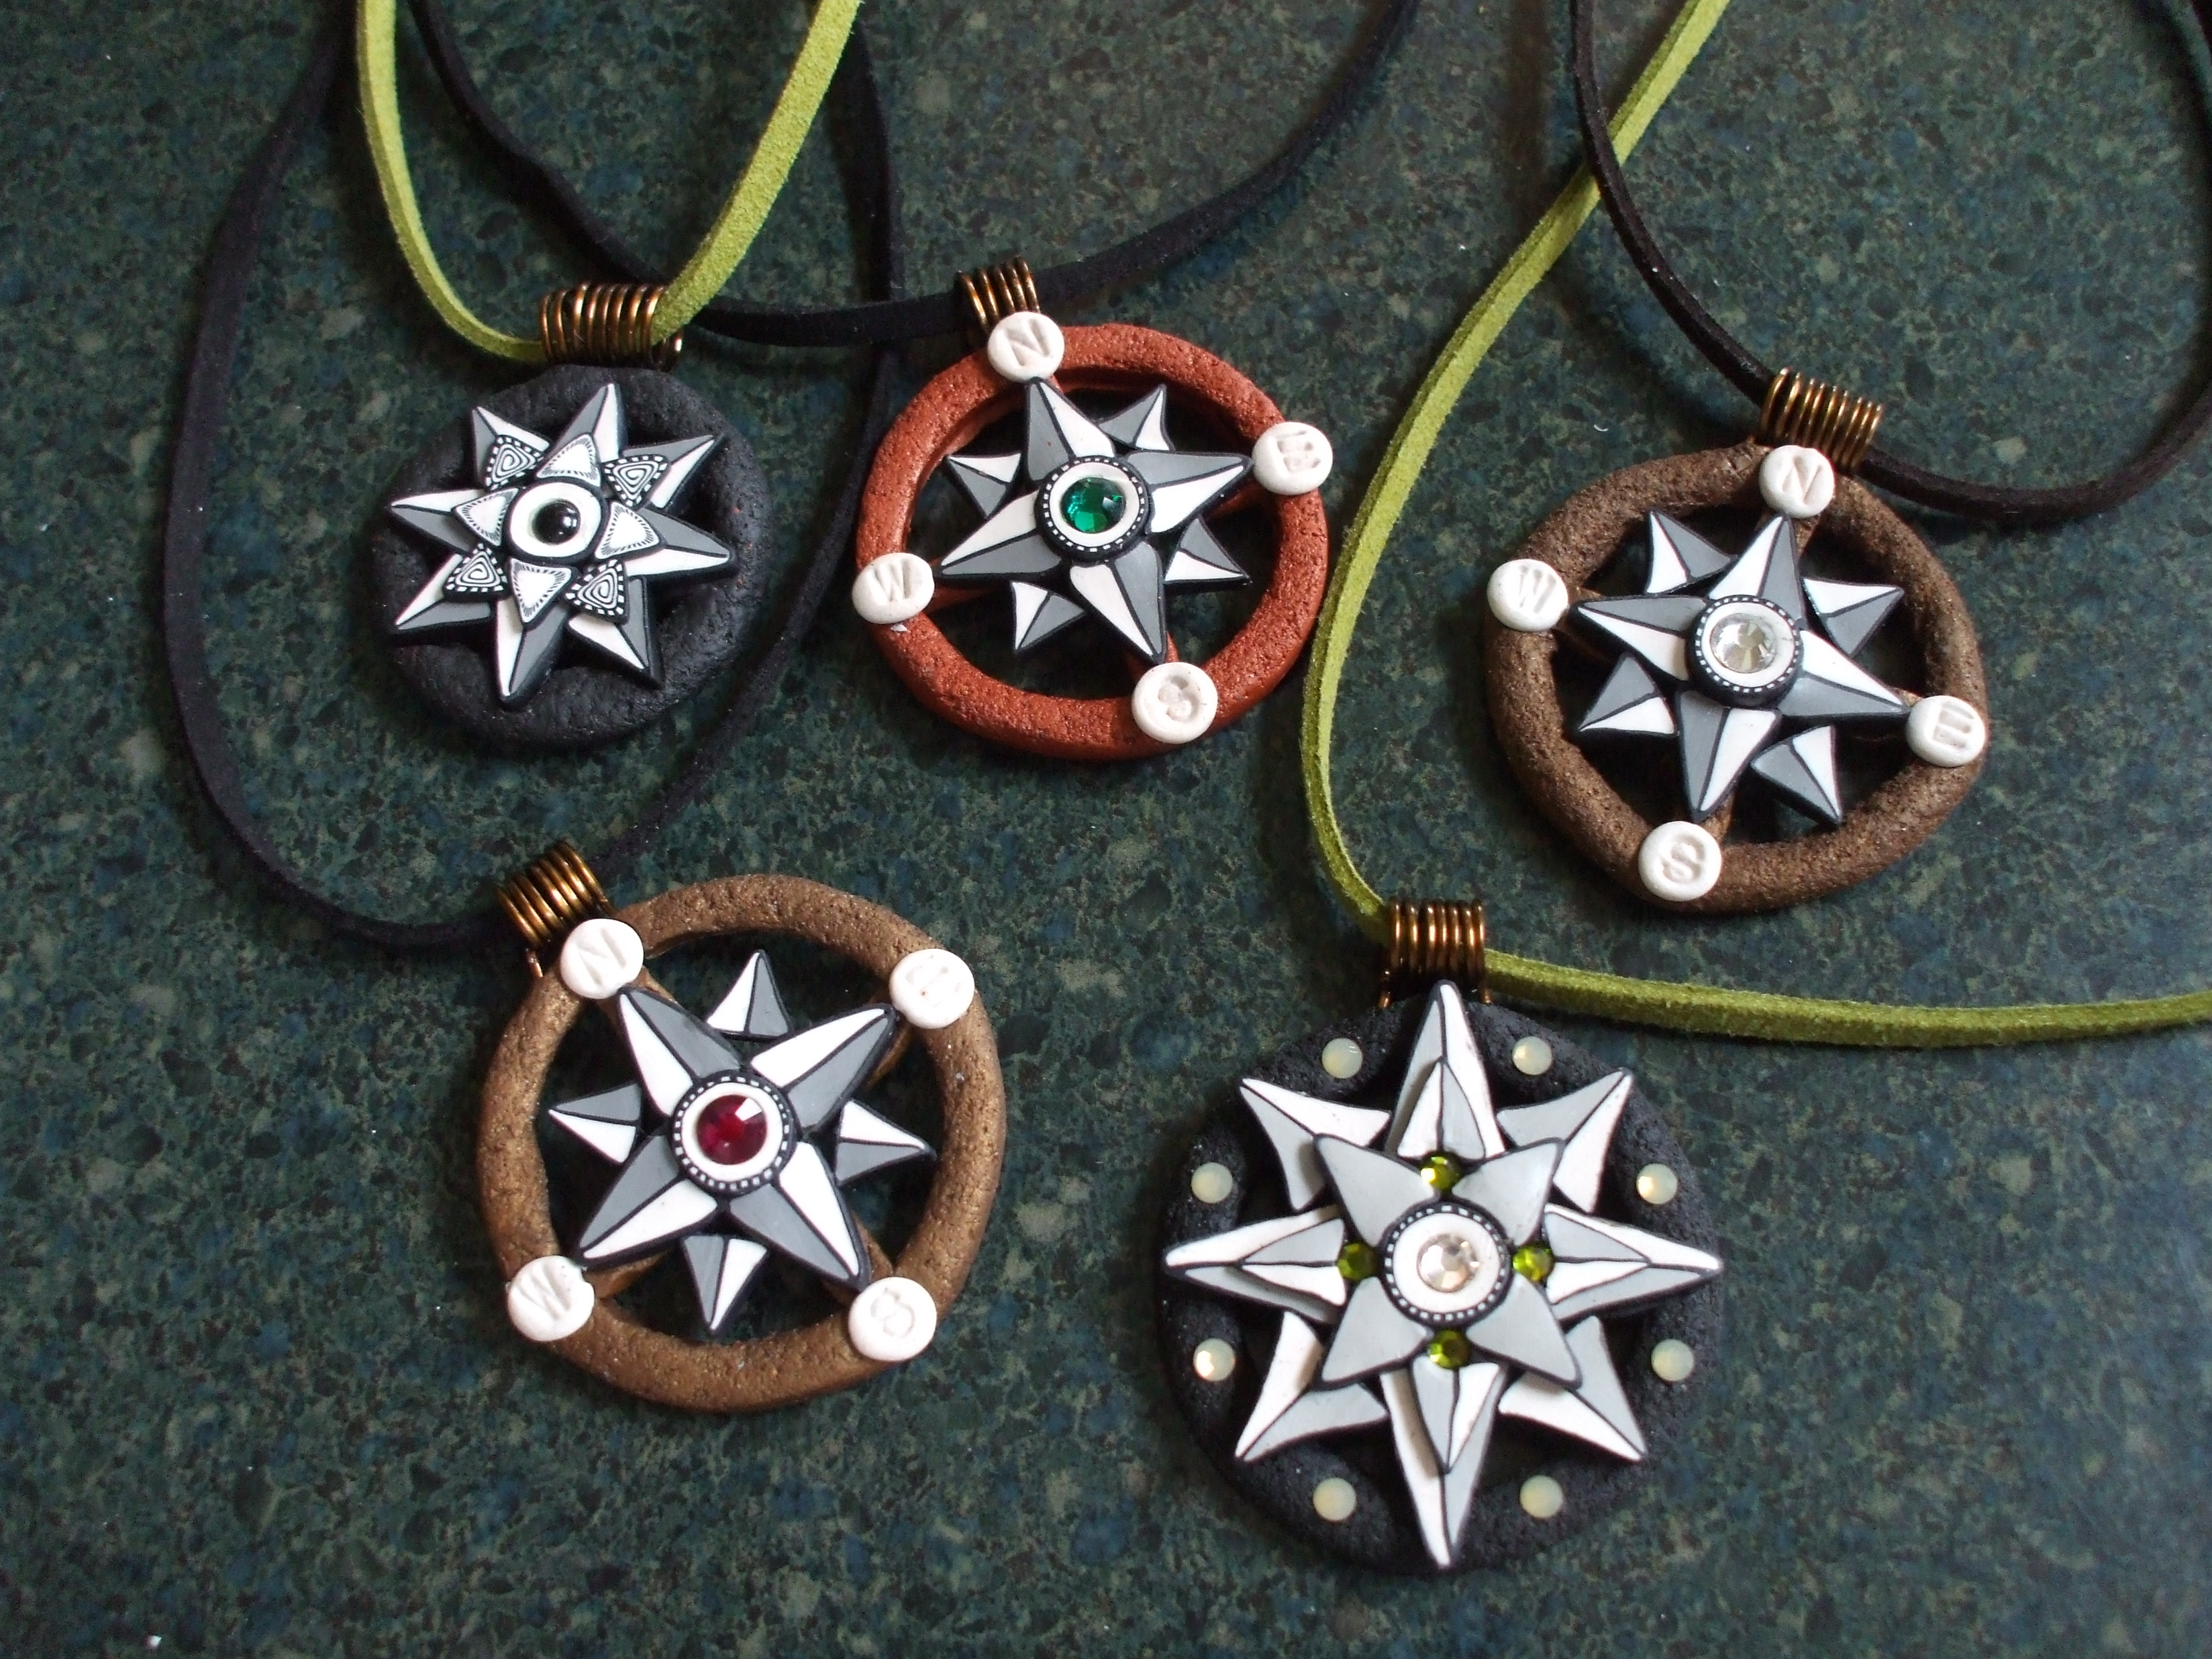 Compass Rose Pendants